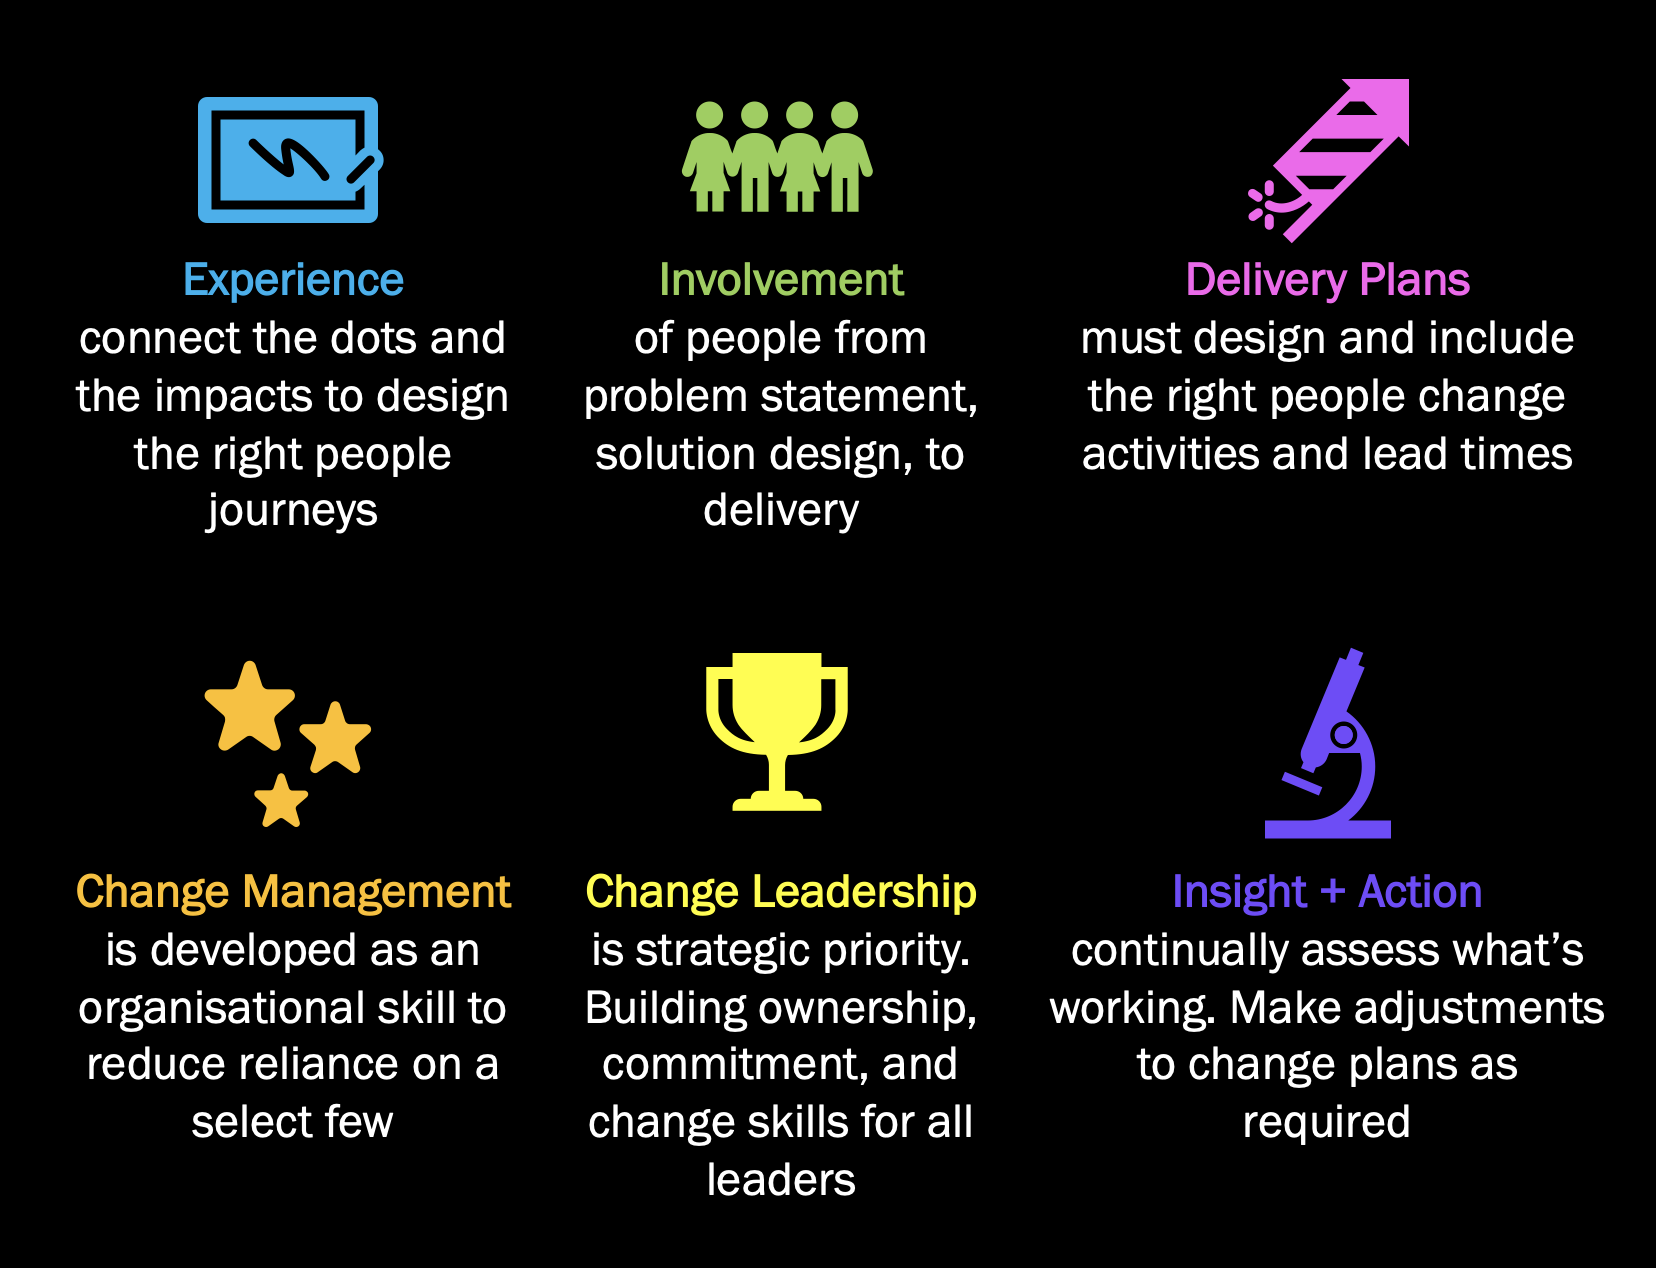 Our principles of change management